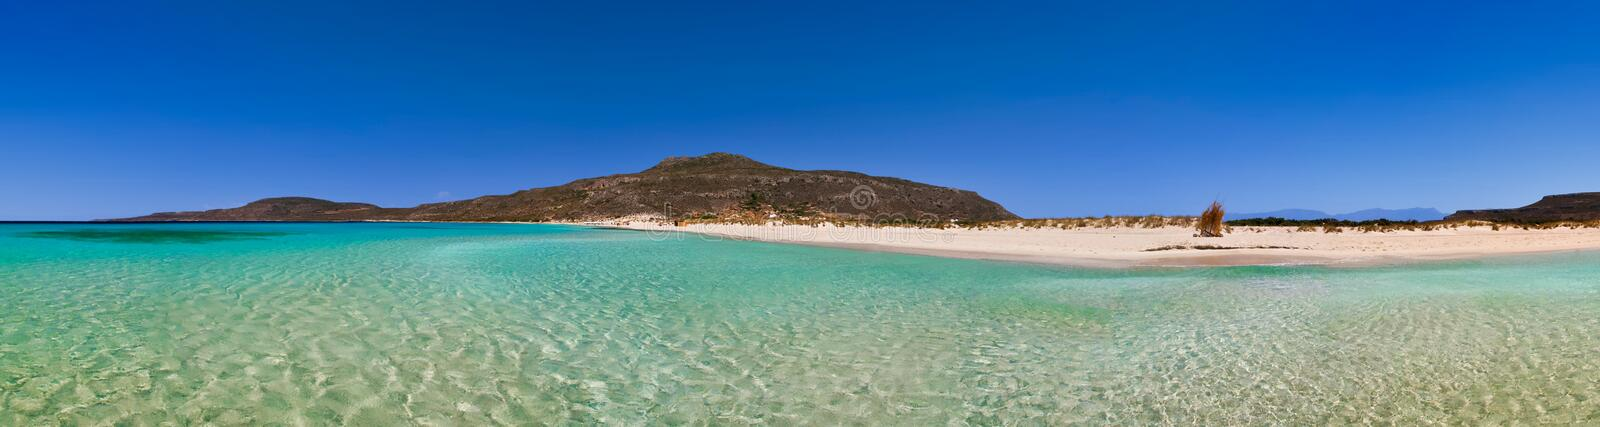 Panorama grec de plage images stock